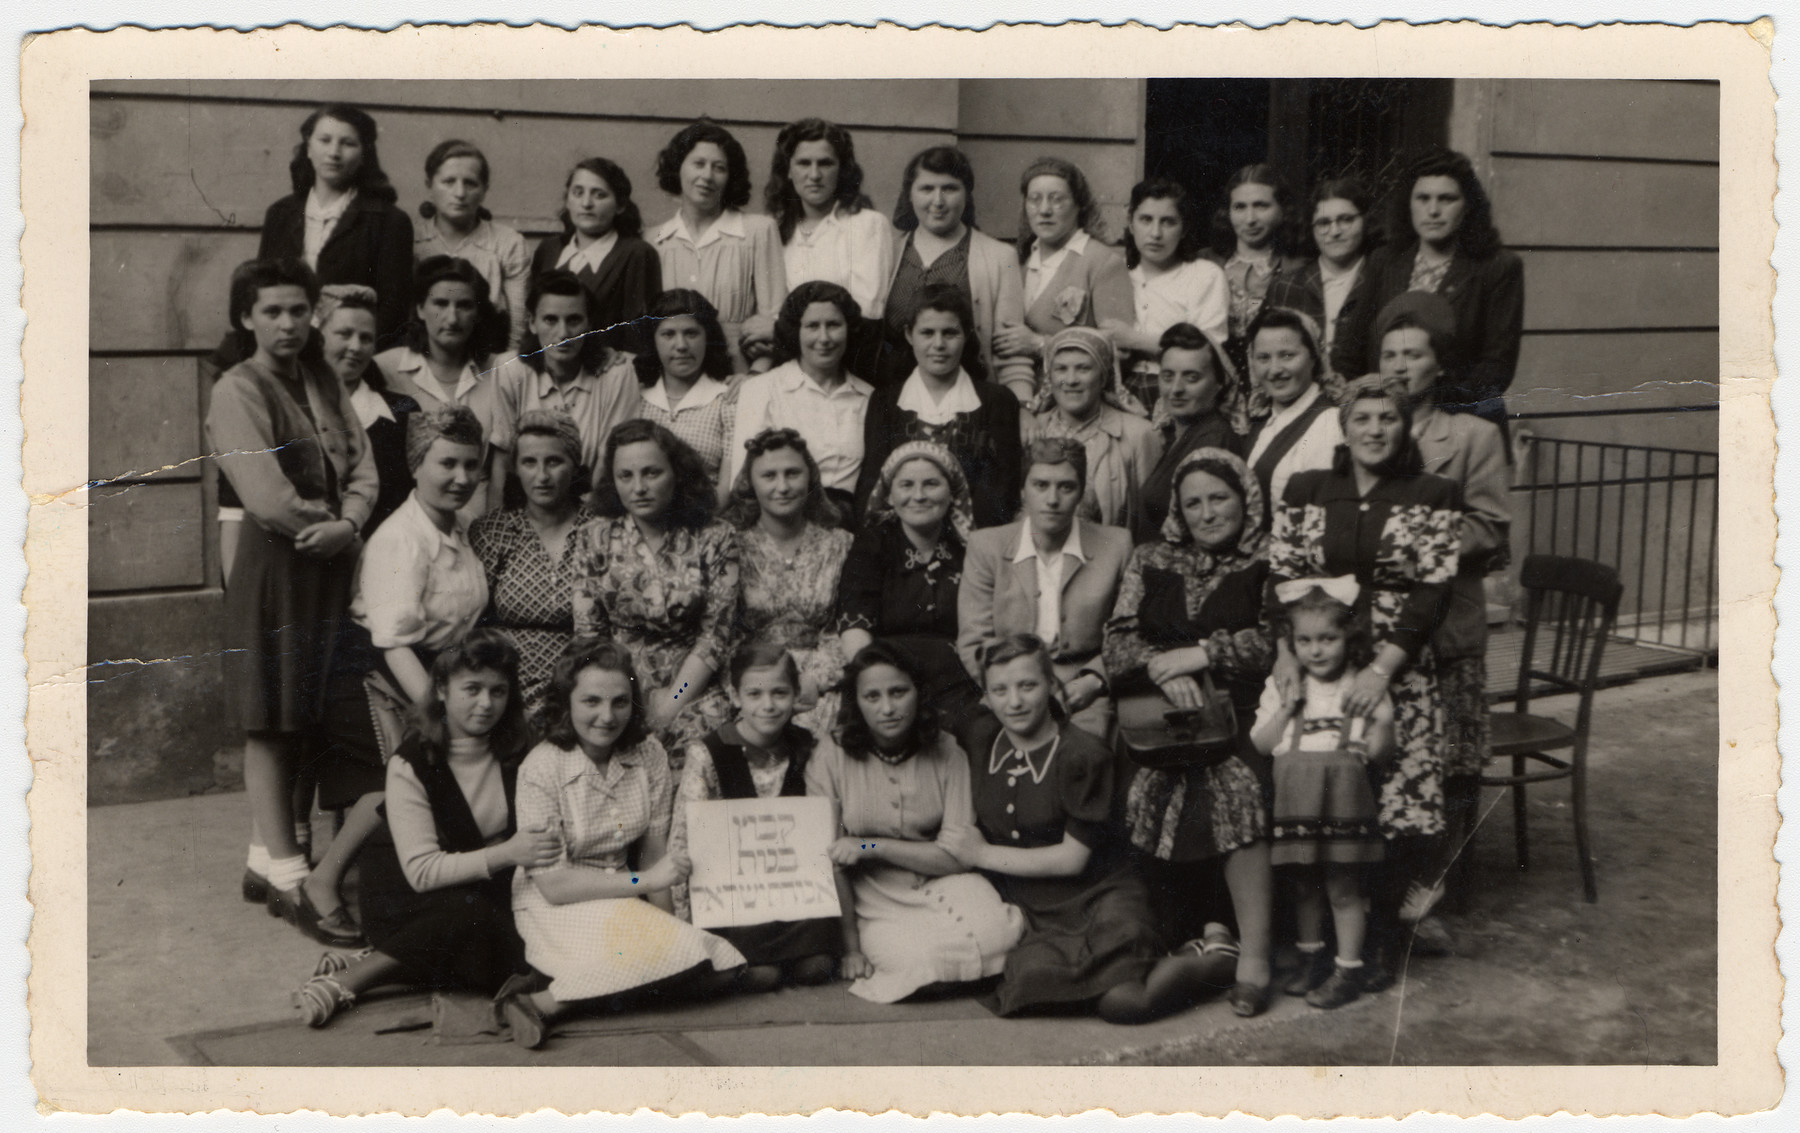 Group portrait of young religious women from Kibbutz Bnot Agudat Yisrael in the Bad Gastein displaced persons' camp.  Among those pictured are Chana Chamanovitch (first row, second from the left), Esther Ass (first row fourth from the left) and Itka Ass (second row, third from the left).